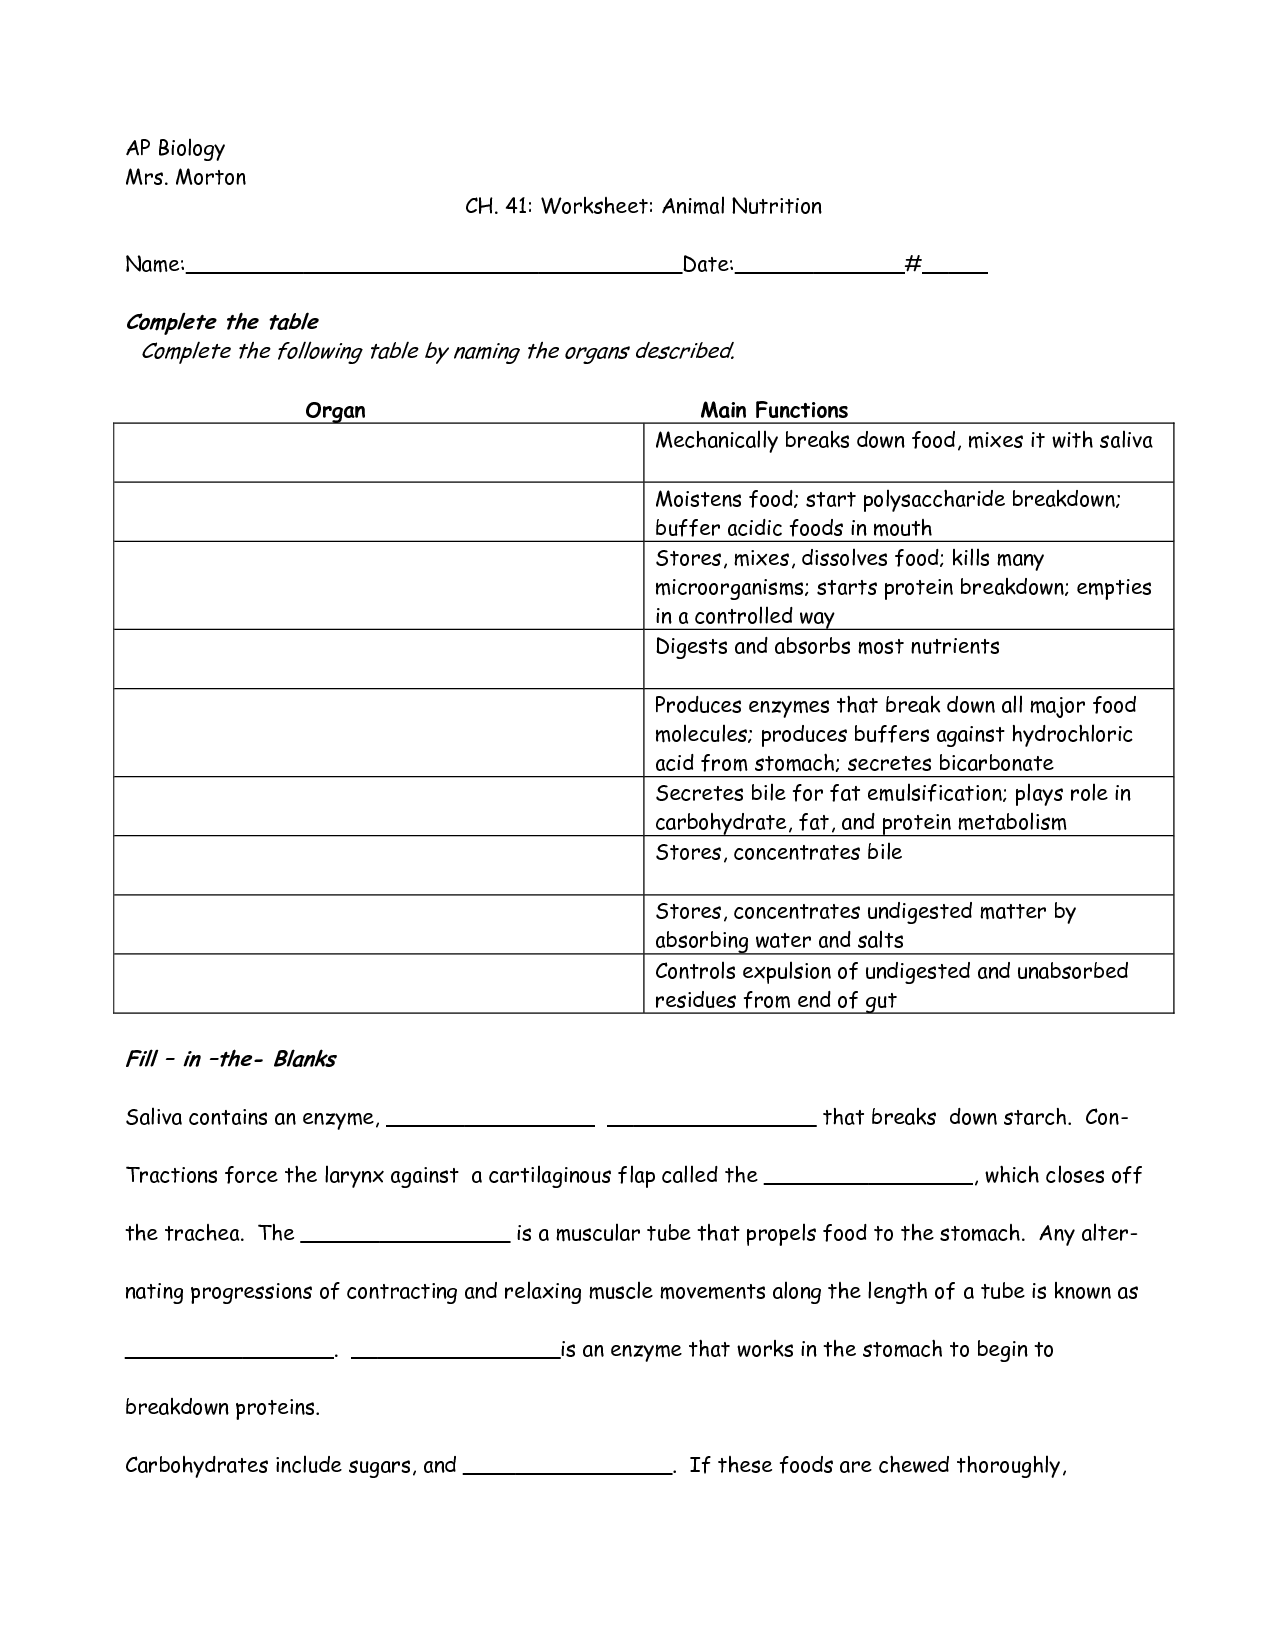 Soil Composition Worksheet